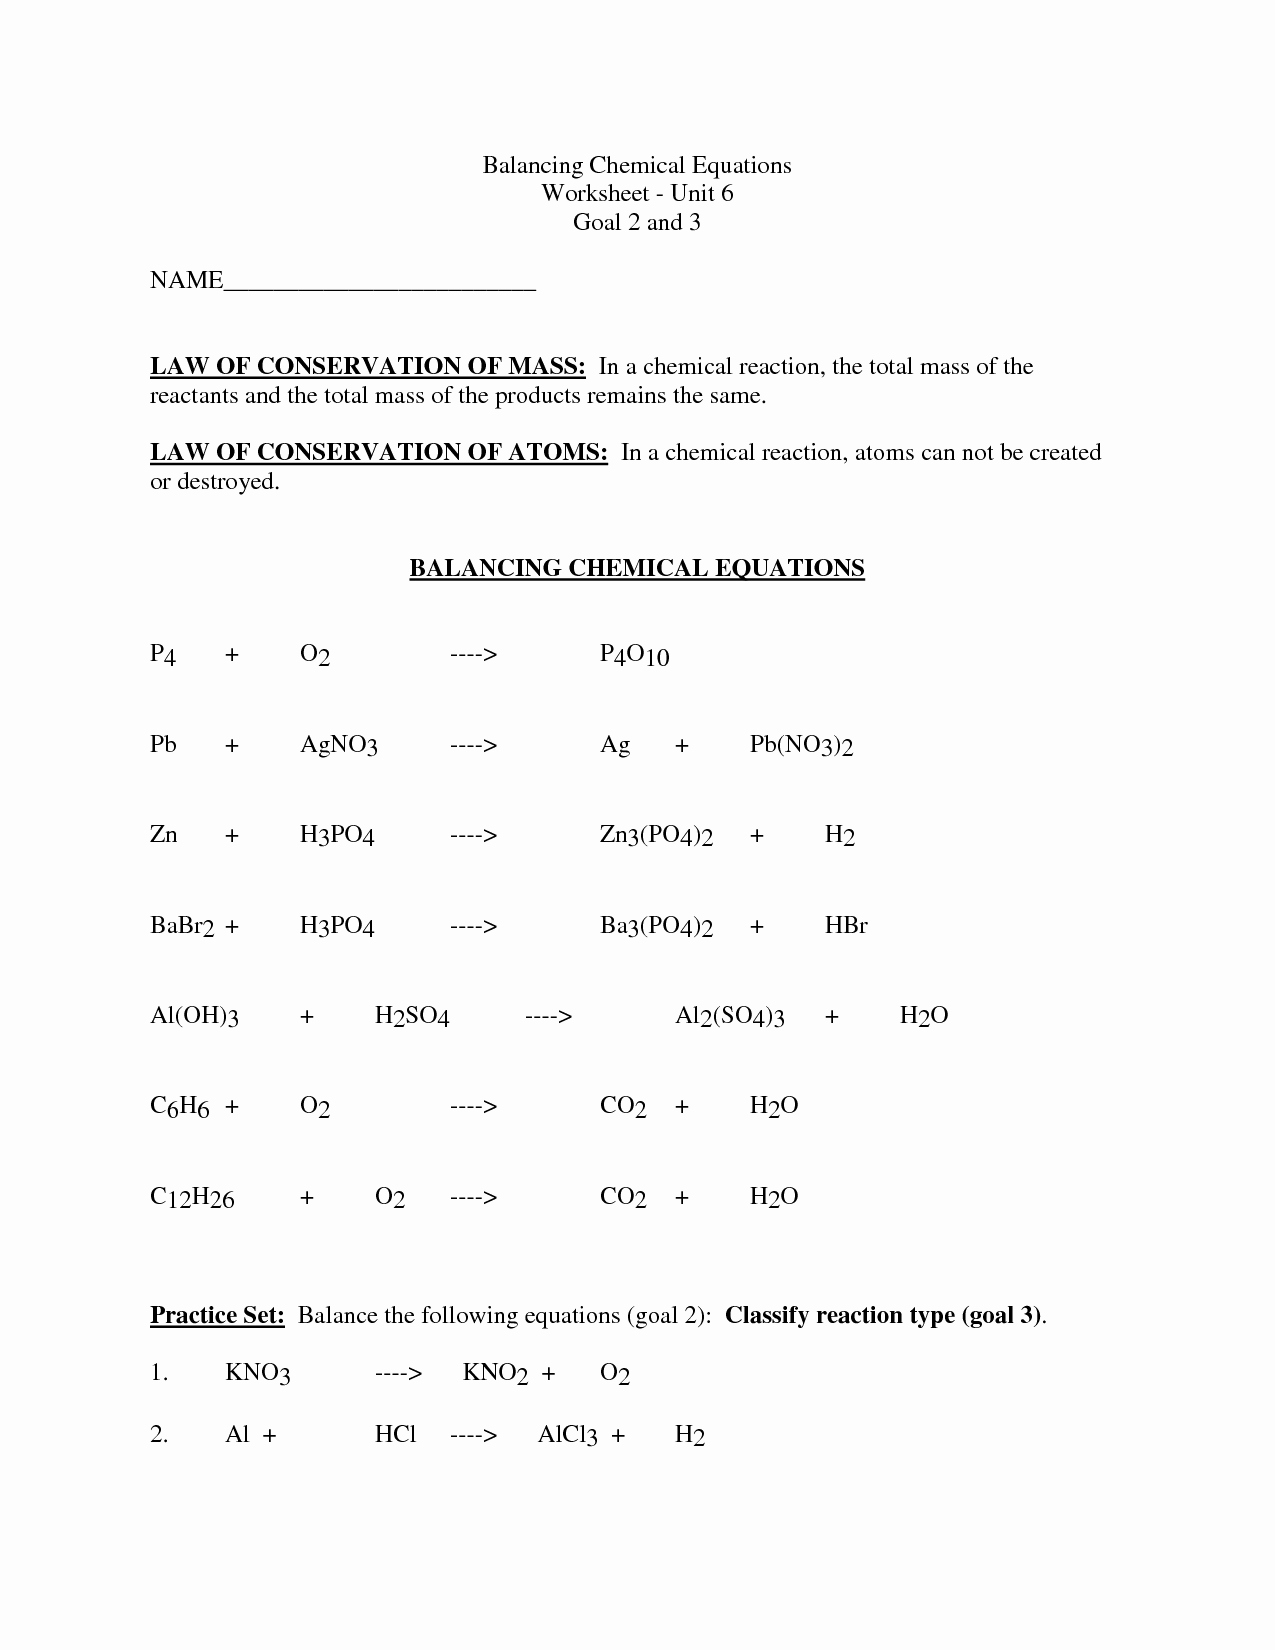 Balancing Chemical Equations Worksheet Answers Luxury 12 Best Of Balancing Chemical Equations Worksheet